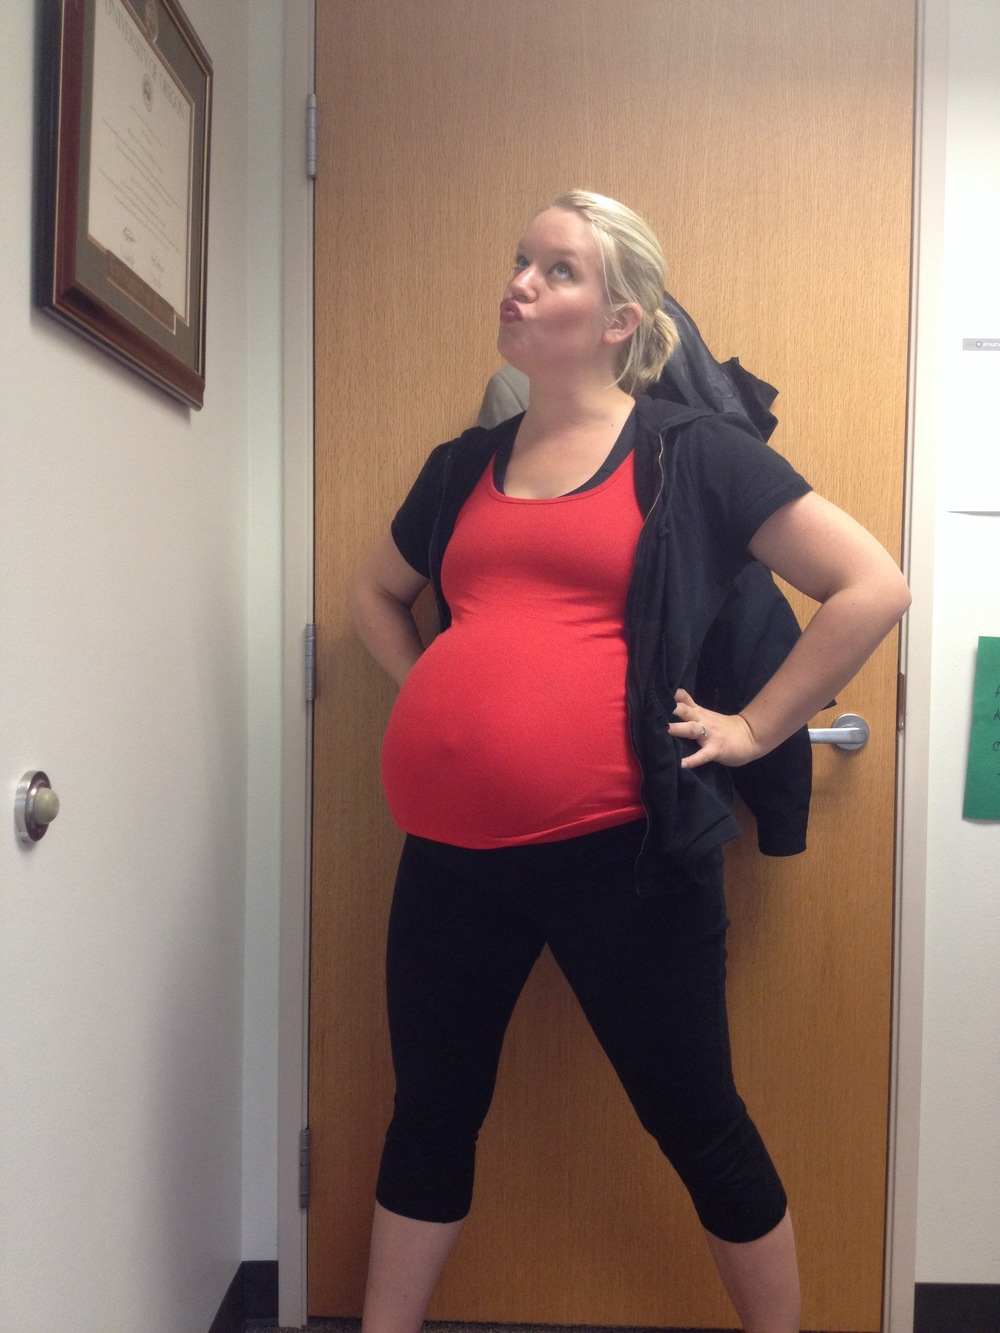 I can doooo it! 8 months pregnant, going to class.